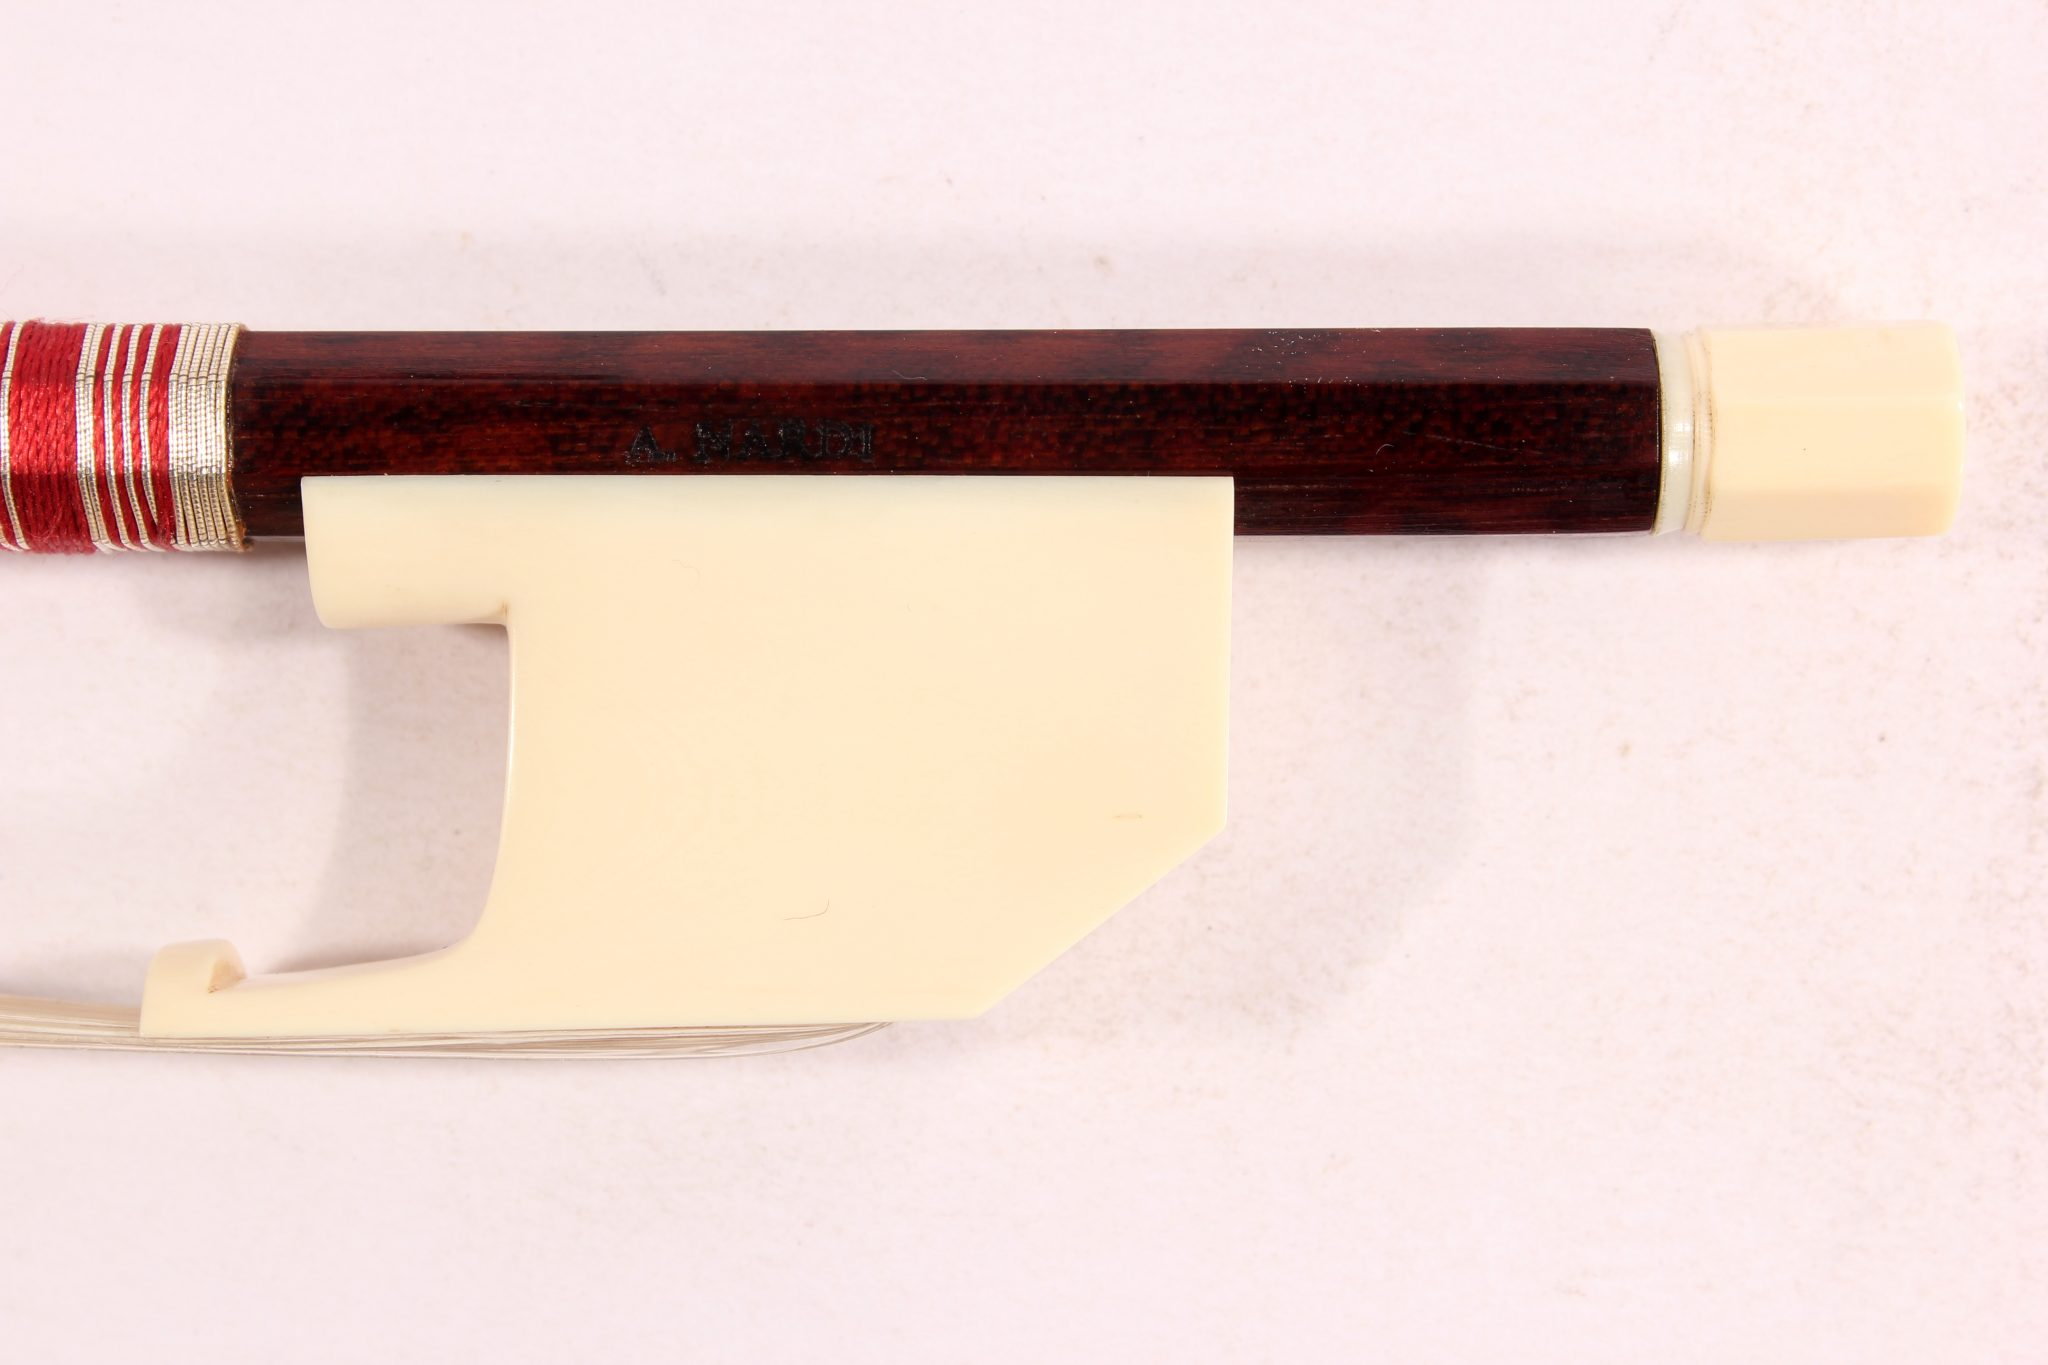 Transitional Violin Bow by A. Nardi for sale at Bridgewood and Neitzert London